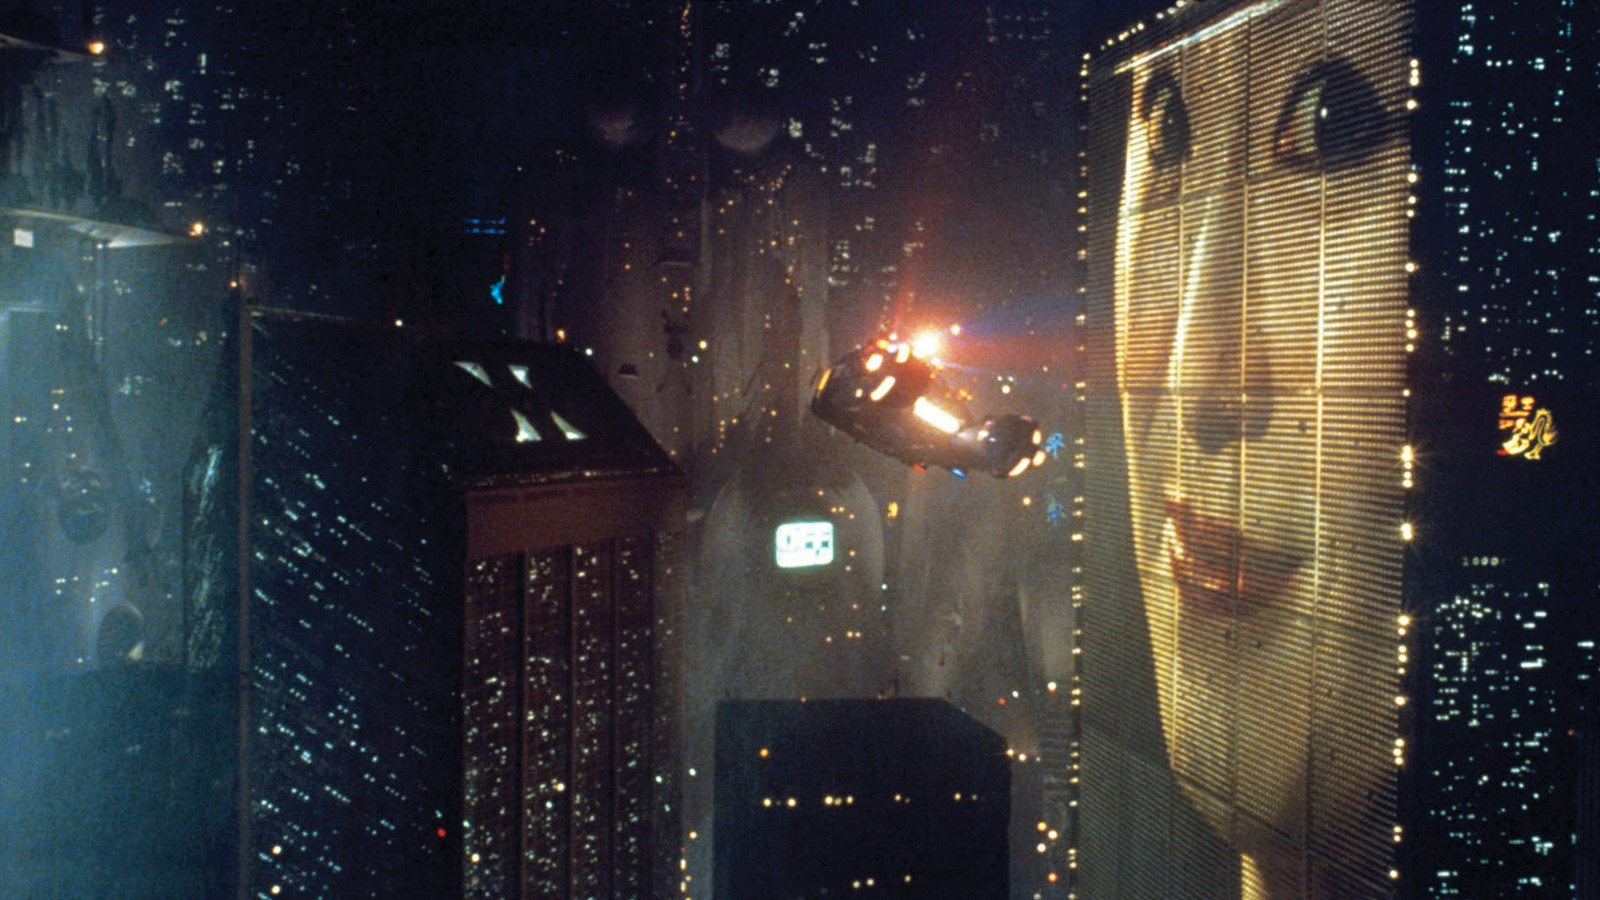 How can architecture in Sci-fi movies inspires today's architects - Sheet1